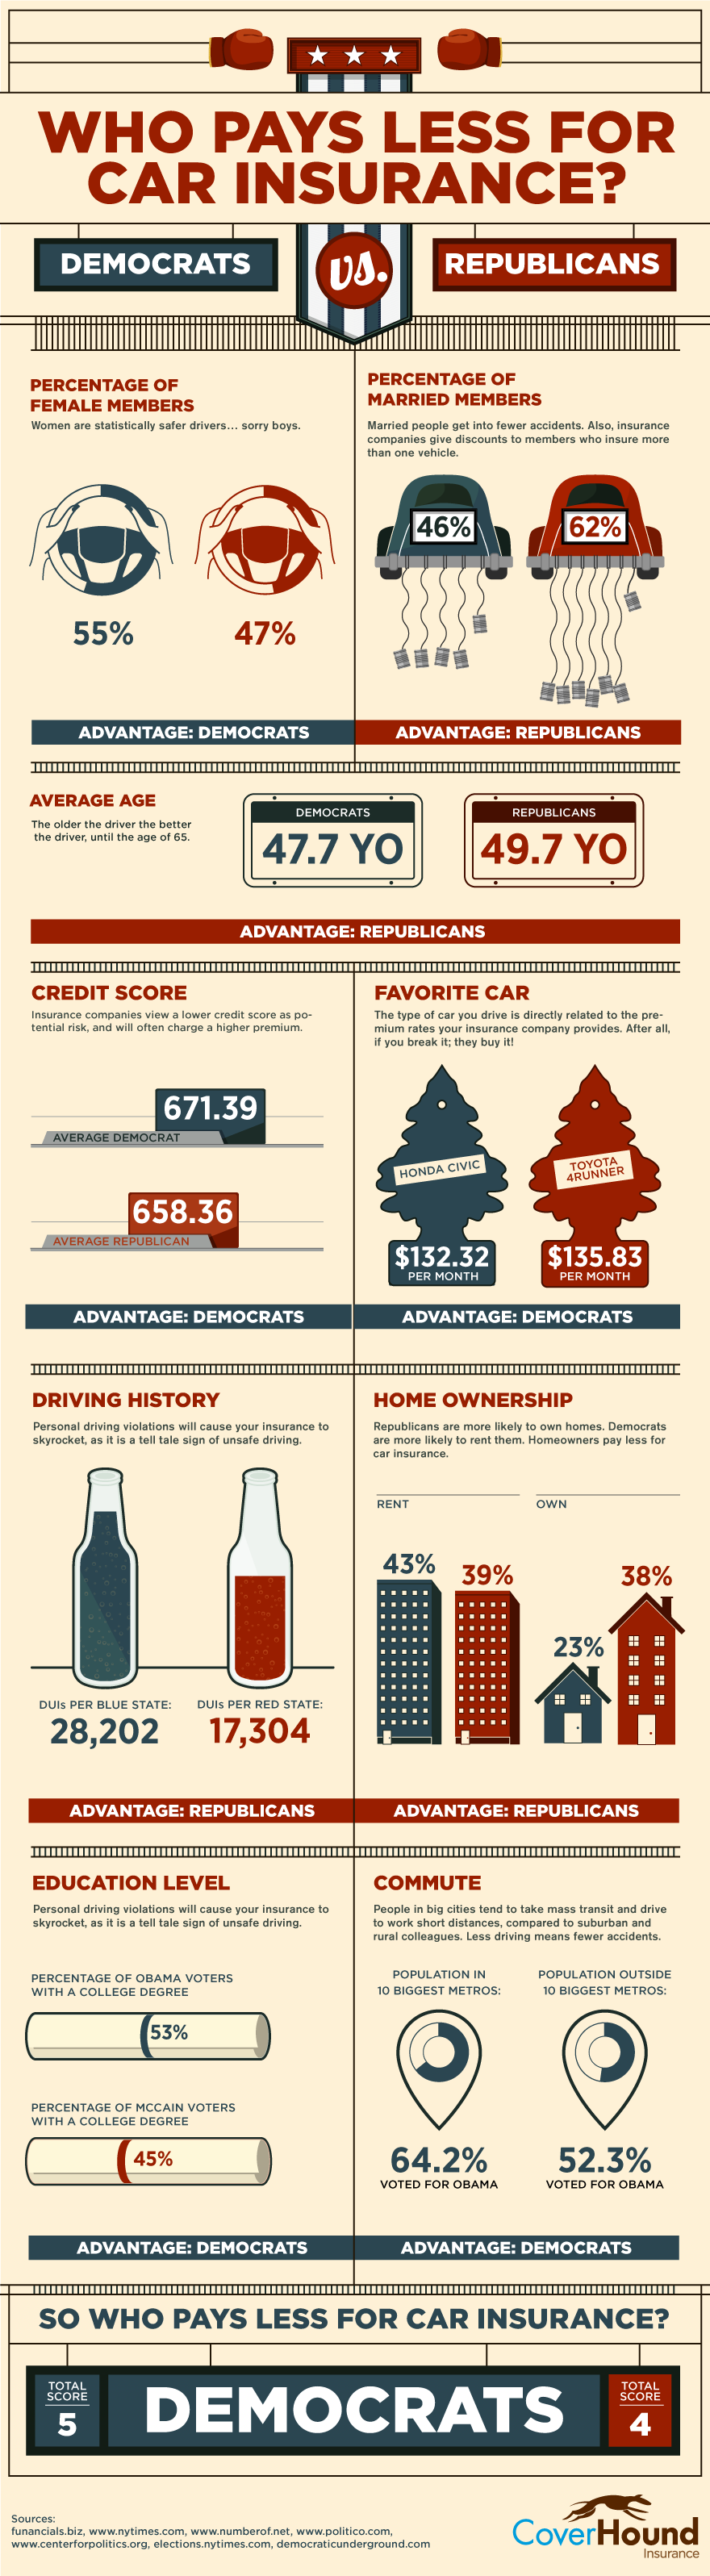 Who-Pays-Less-For-Car-Insurance-Infographic